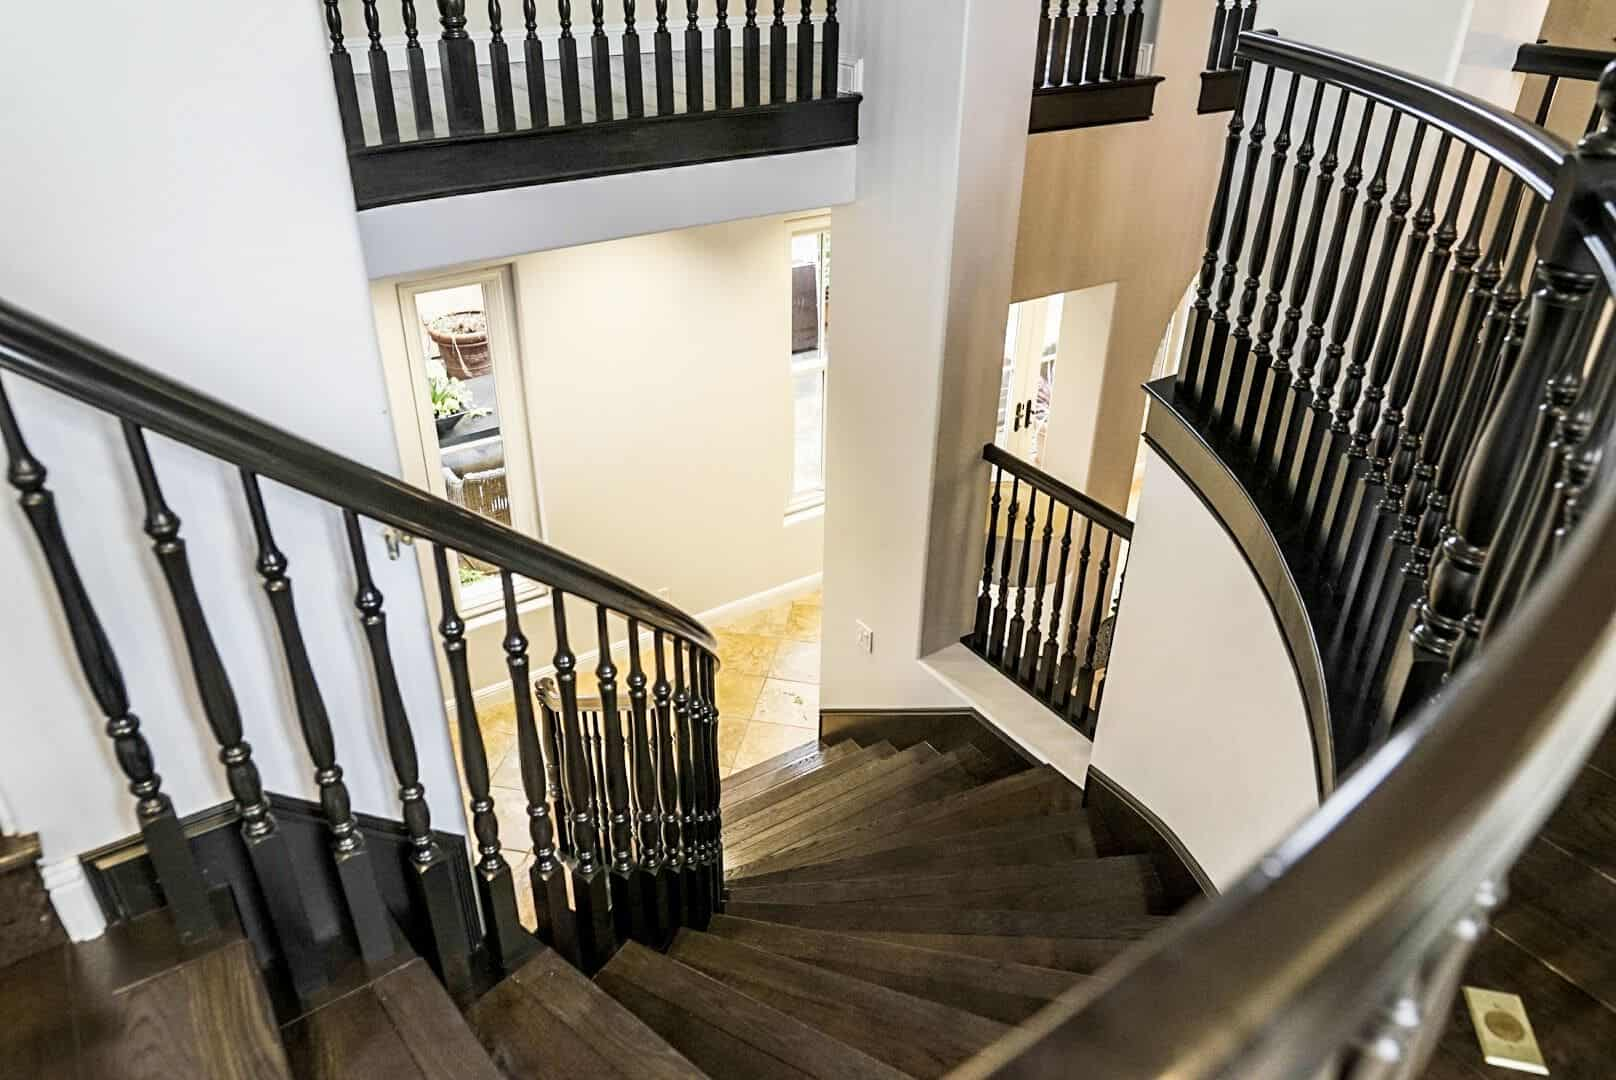 A focused look at the home's curved wooden staircase set near the entry, featuring classy railings. Images courtesy of Toptenrealestatedeals.com.